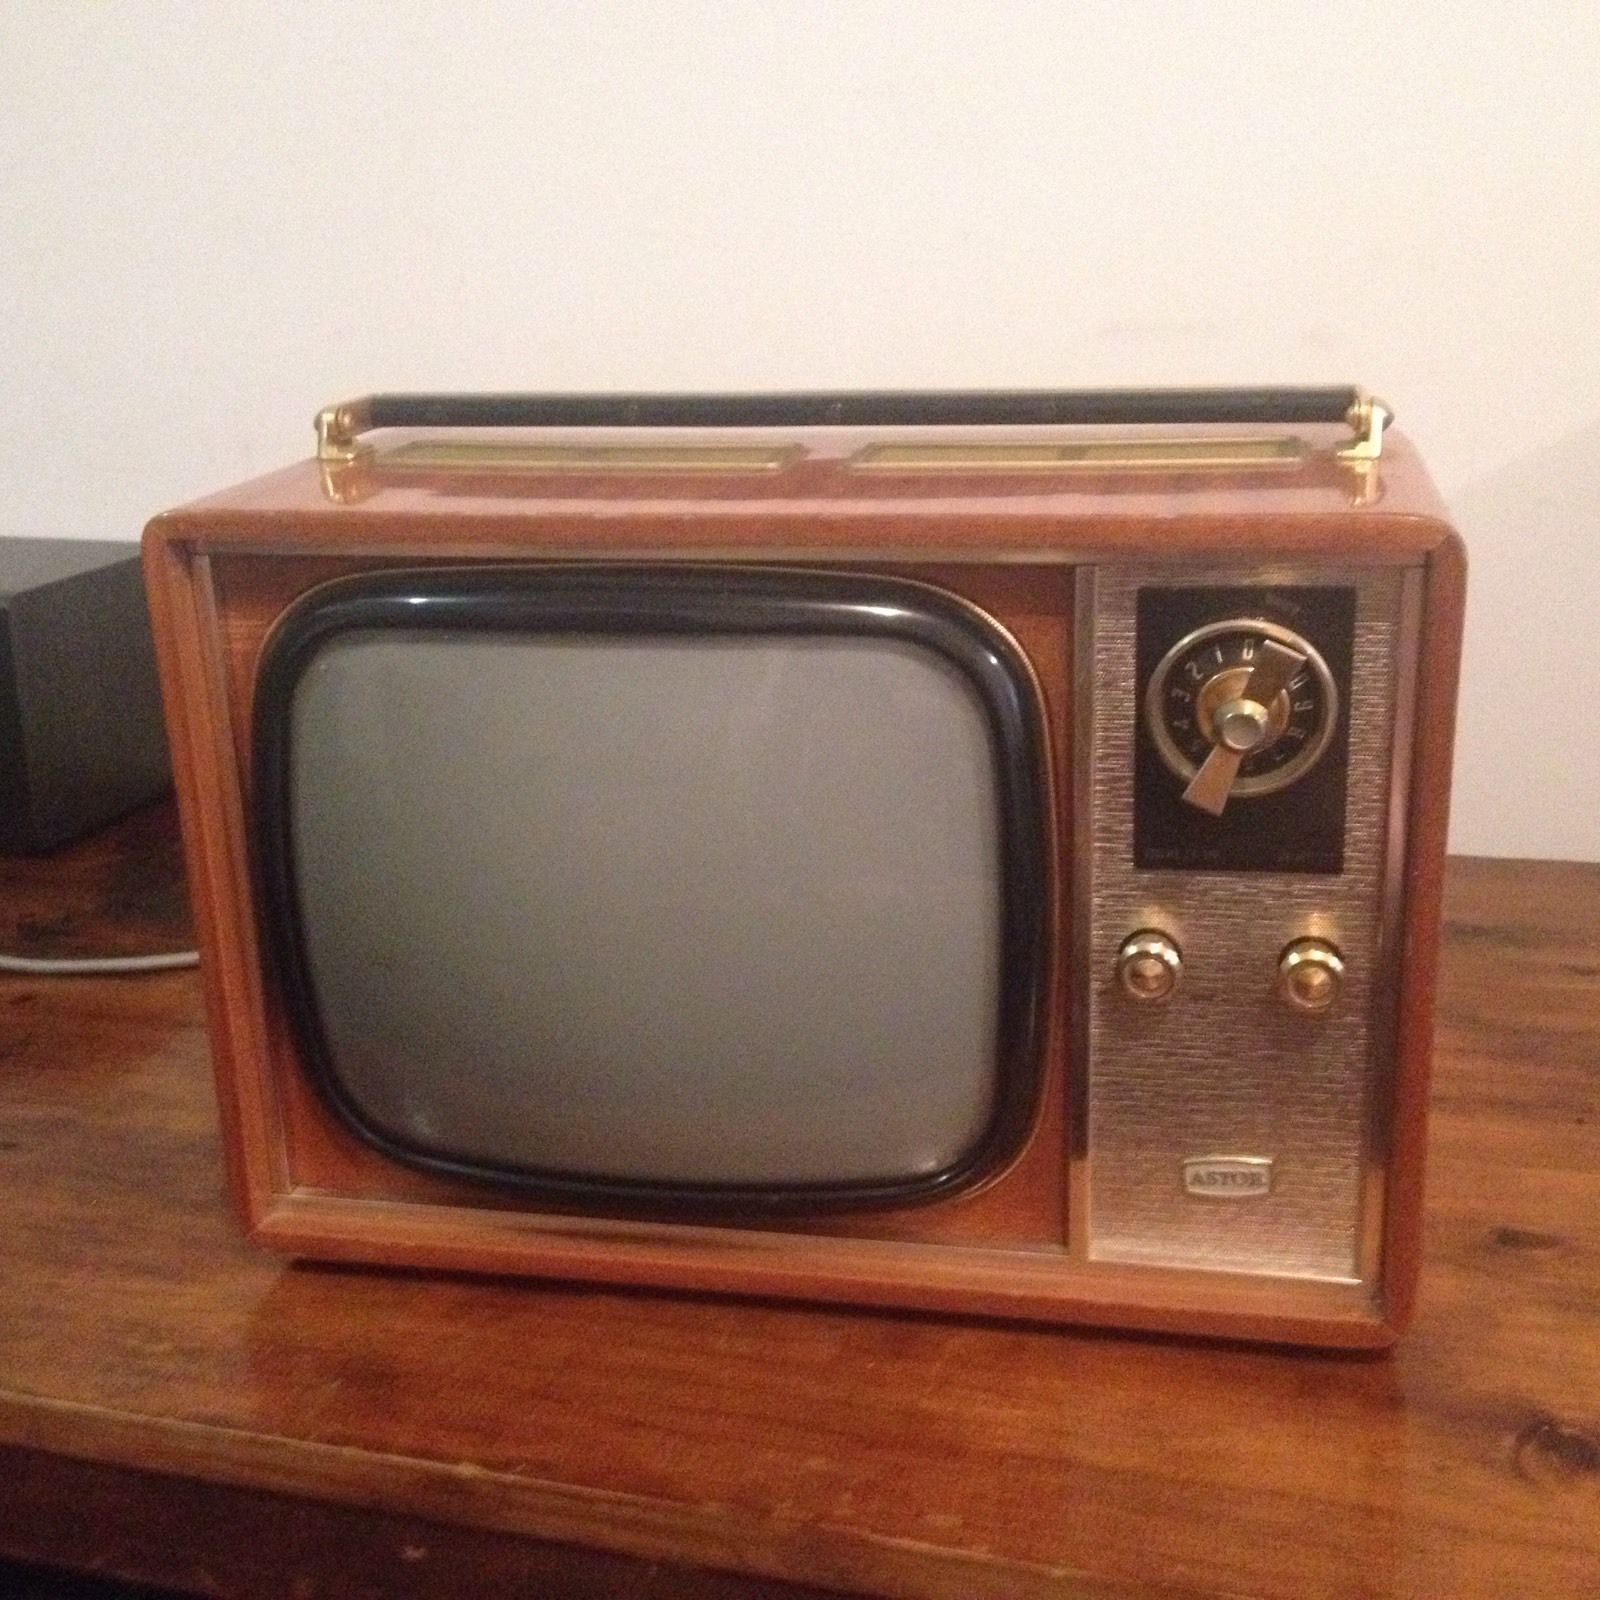 Astor portable television from 1965